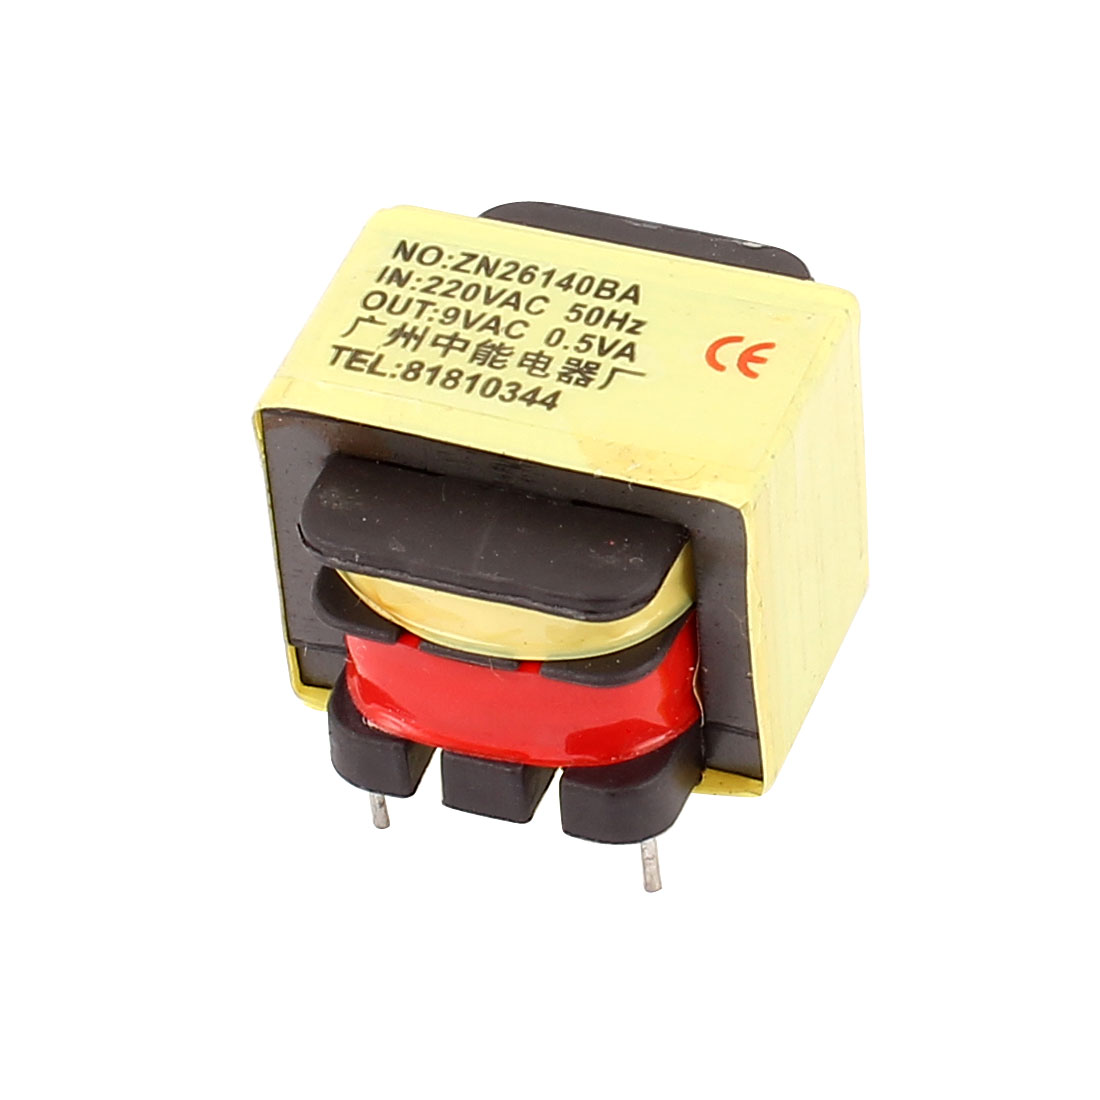 220V Input 9V 0.5VA Output Yellow Red Ferrite Core Power Transformer w 5 Terminals